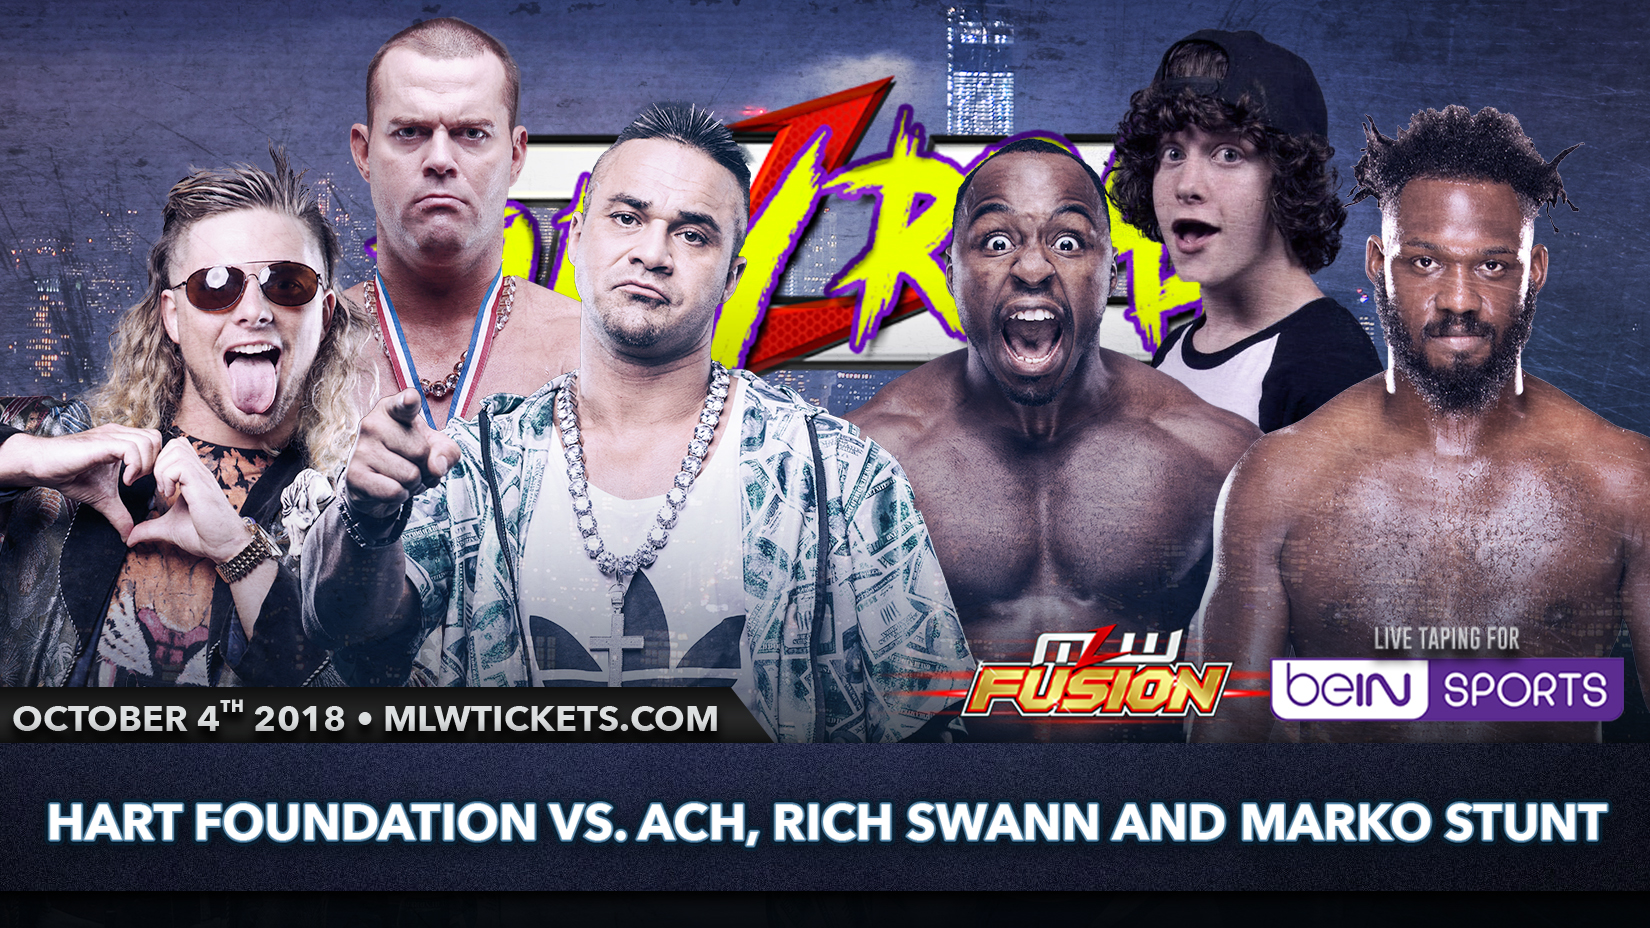 Marko Stunt to make MLW debut Oct  4th versus Hart Foundation